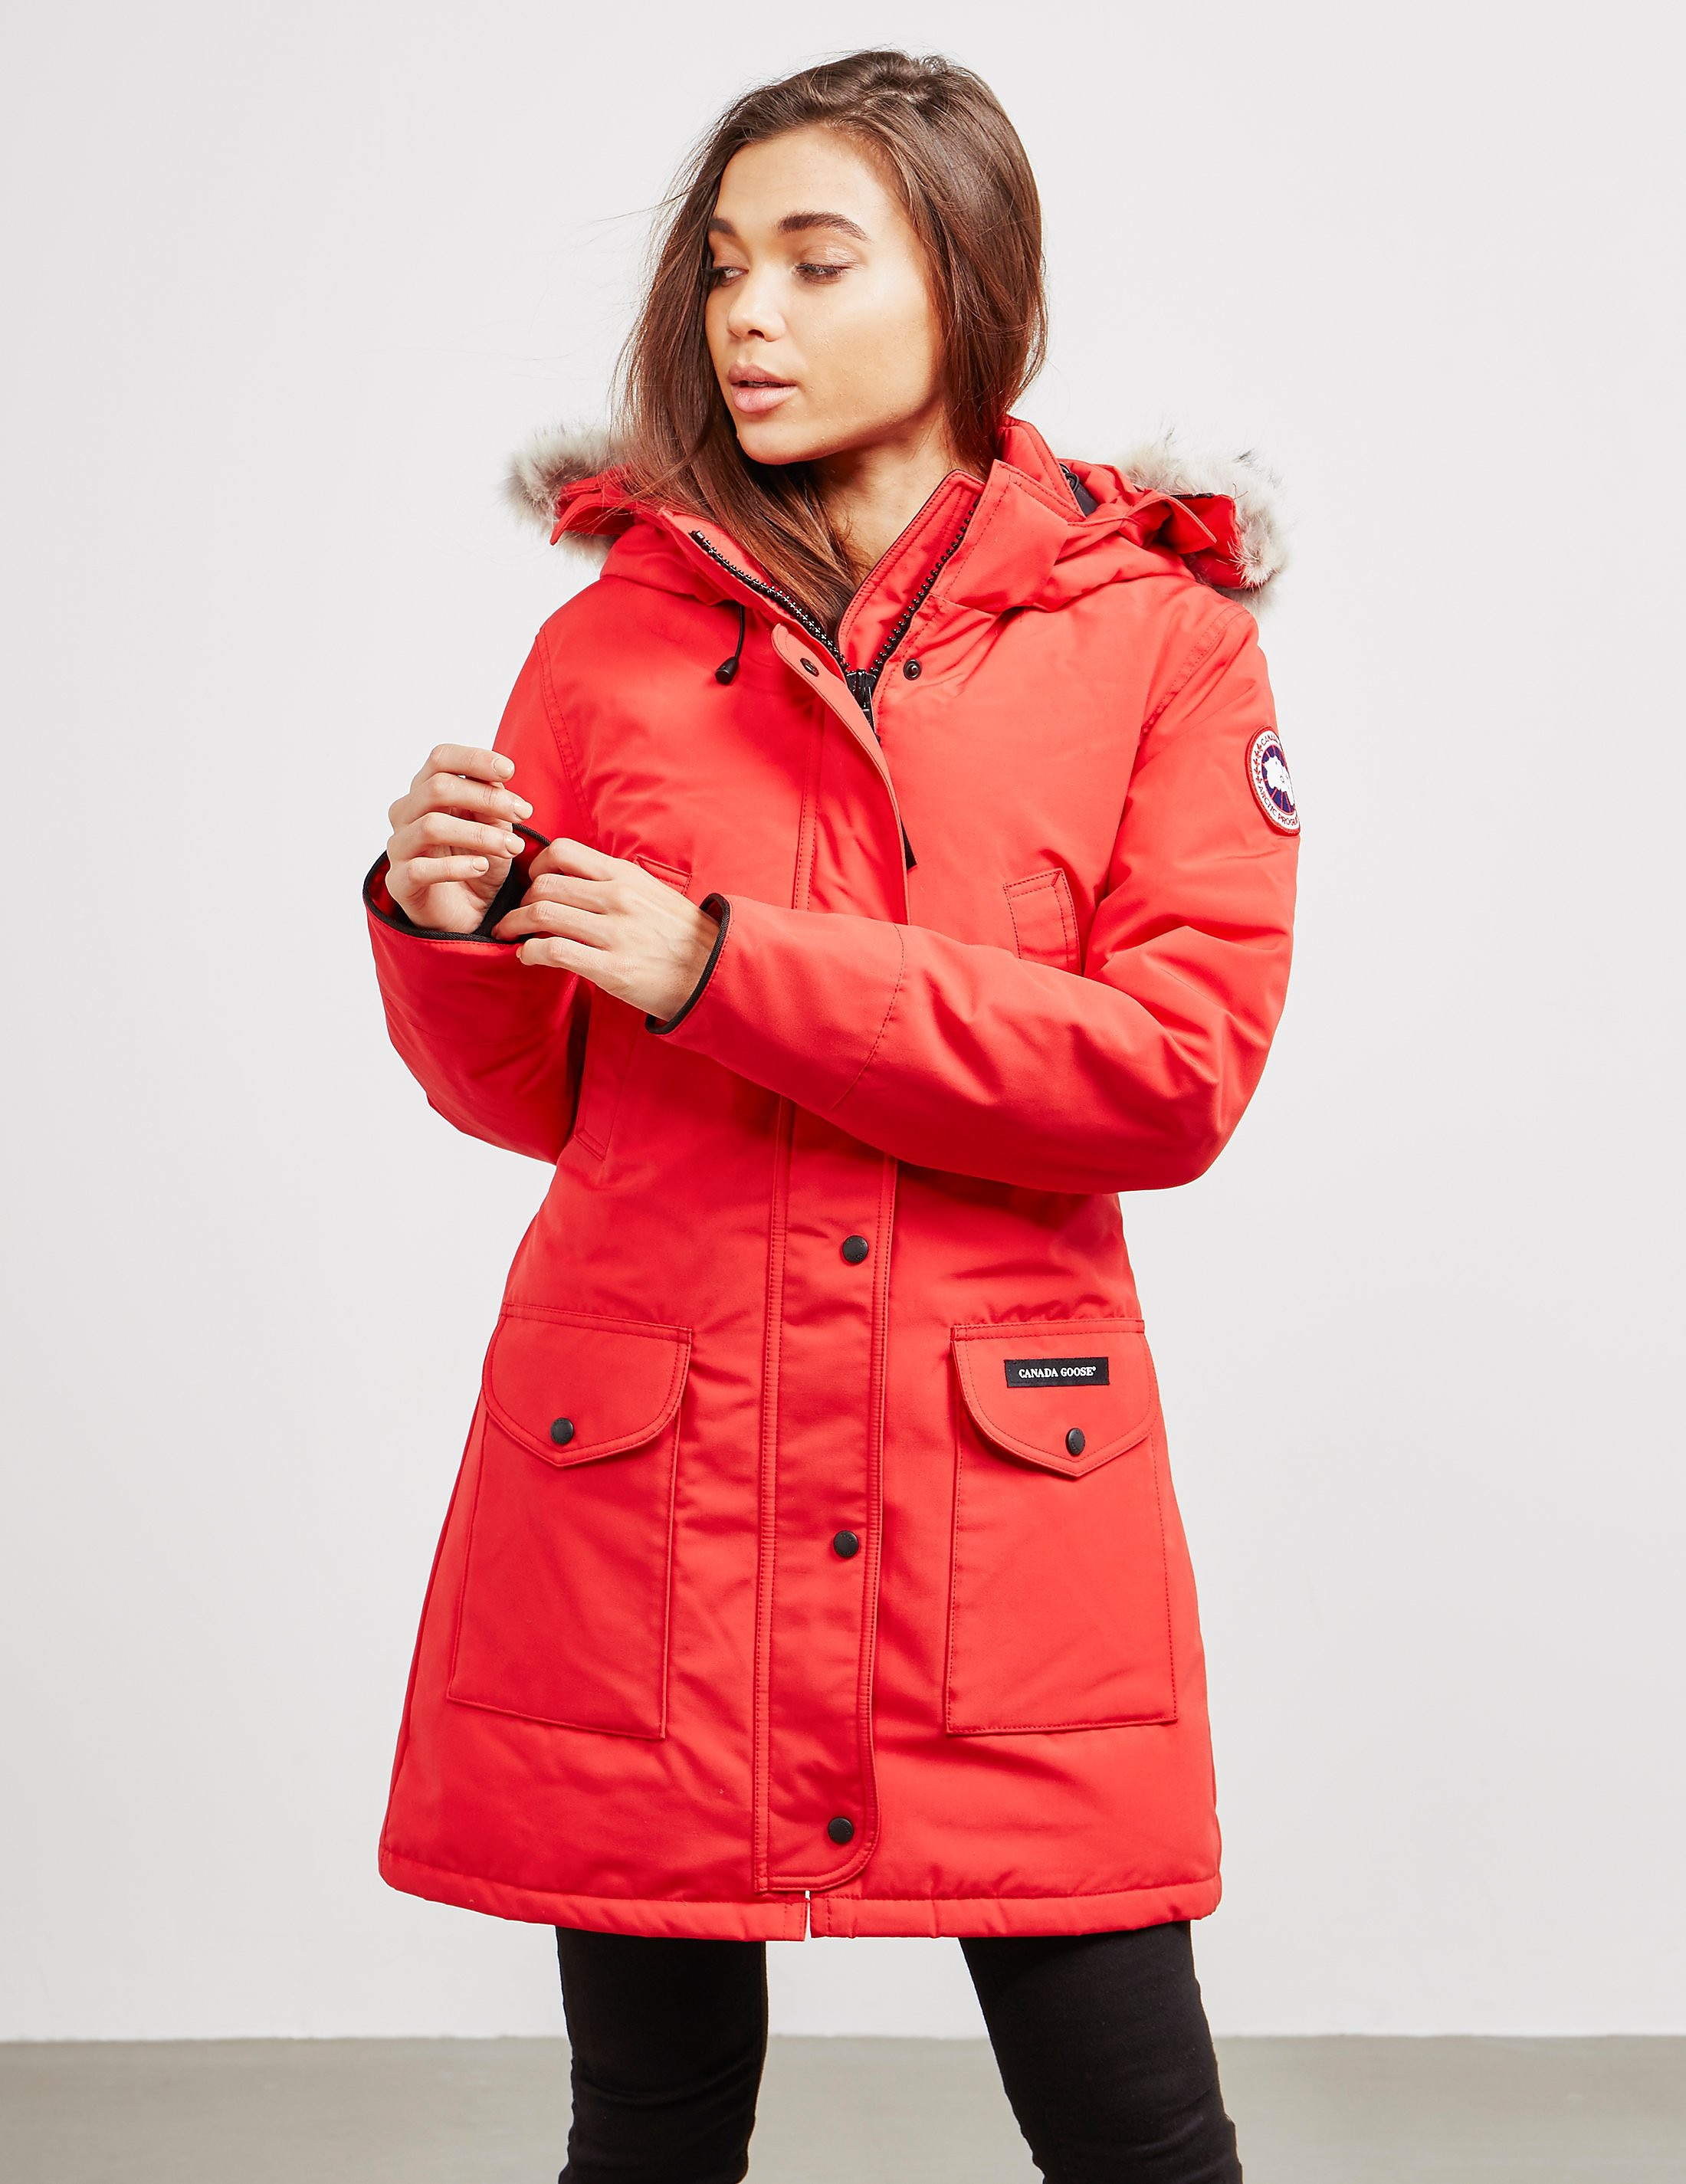 Womens Canada Goose Trillium Padded Parka Jacket Red f1919a343a